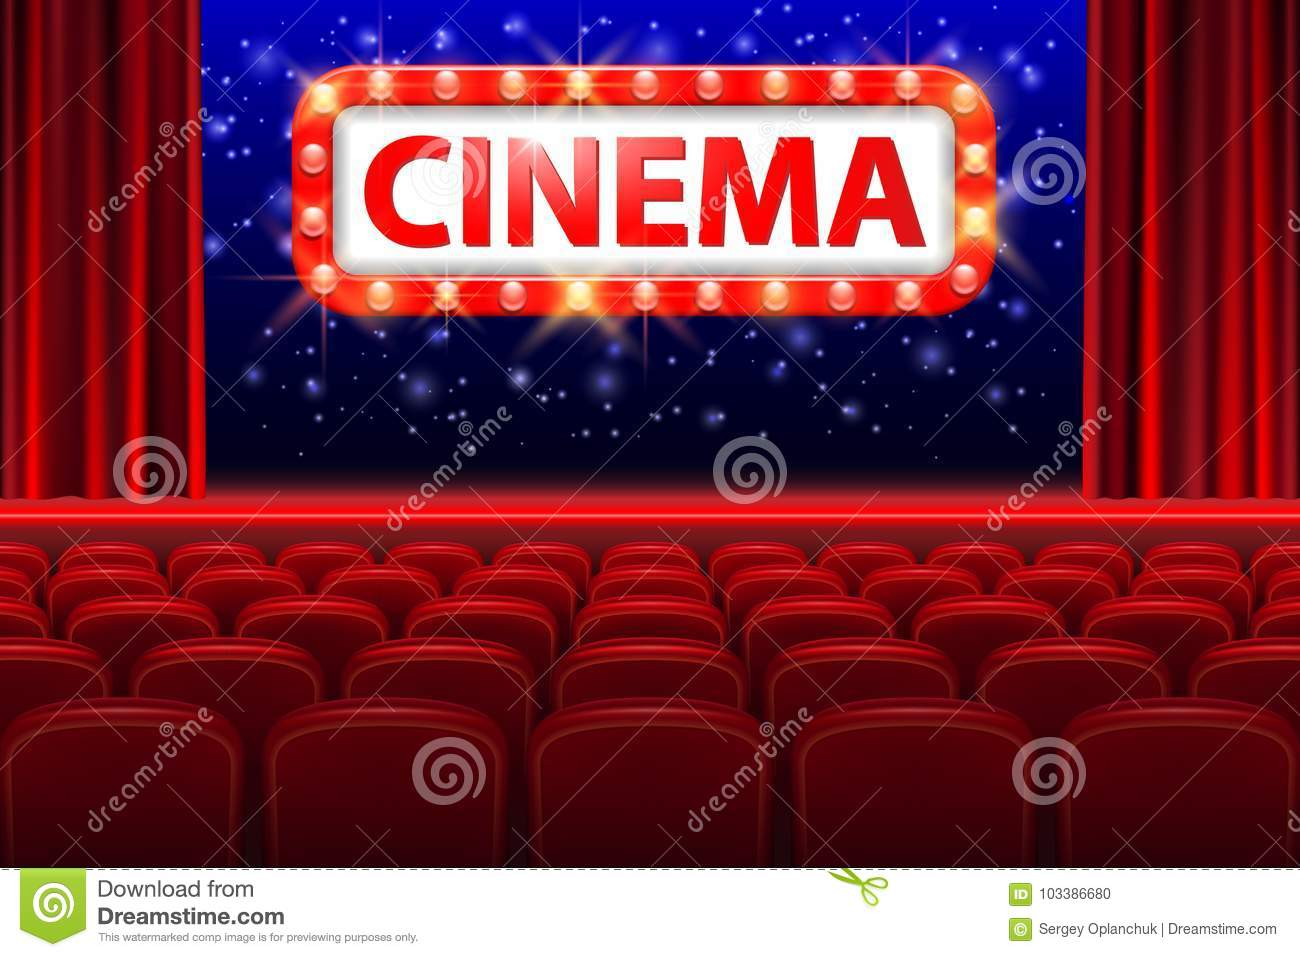 Download Realistic Cinema Hall Interior With Red Seats. Retro Style Cinema  Sign With Spot Light